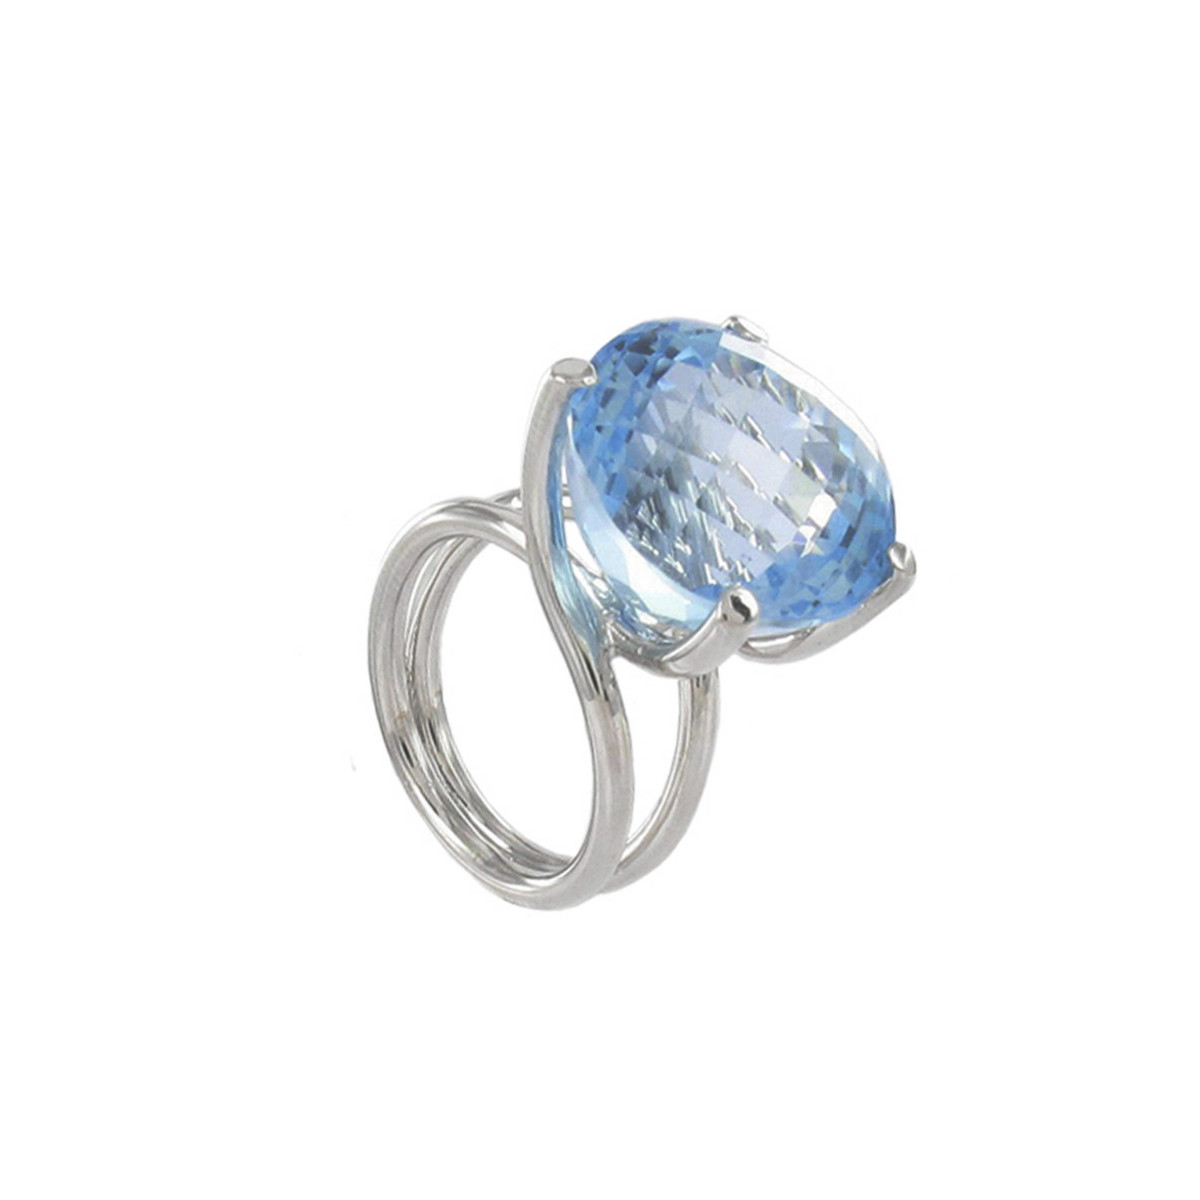 GOLD RING WITH GREAT BLUE TOPAZ